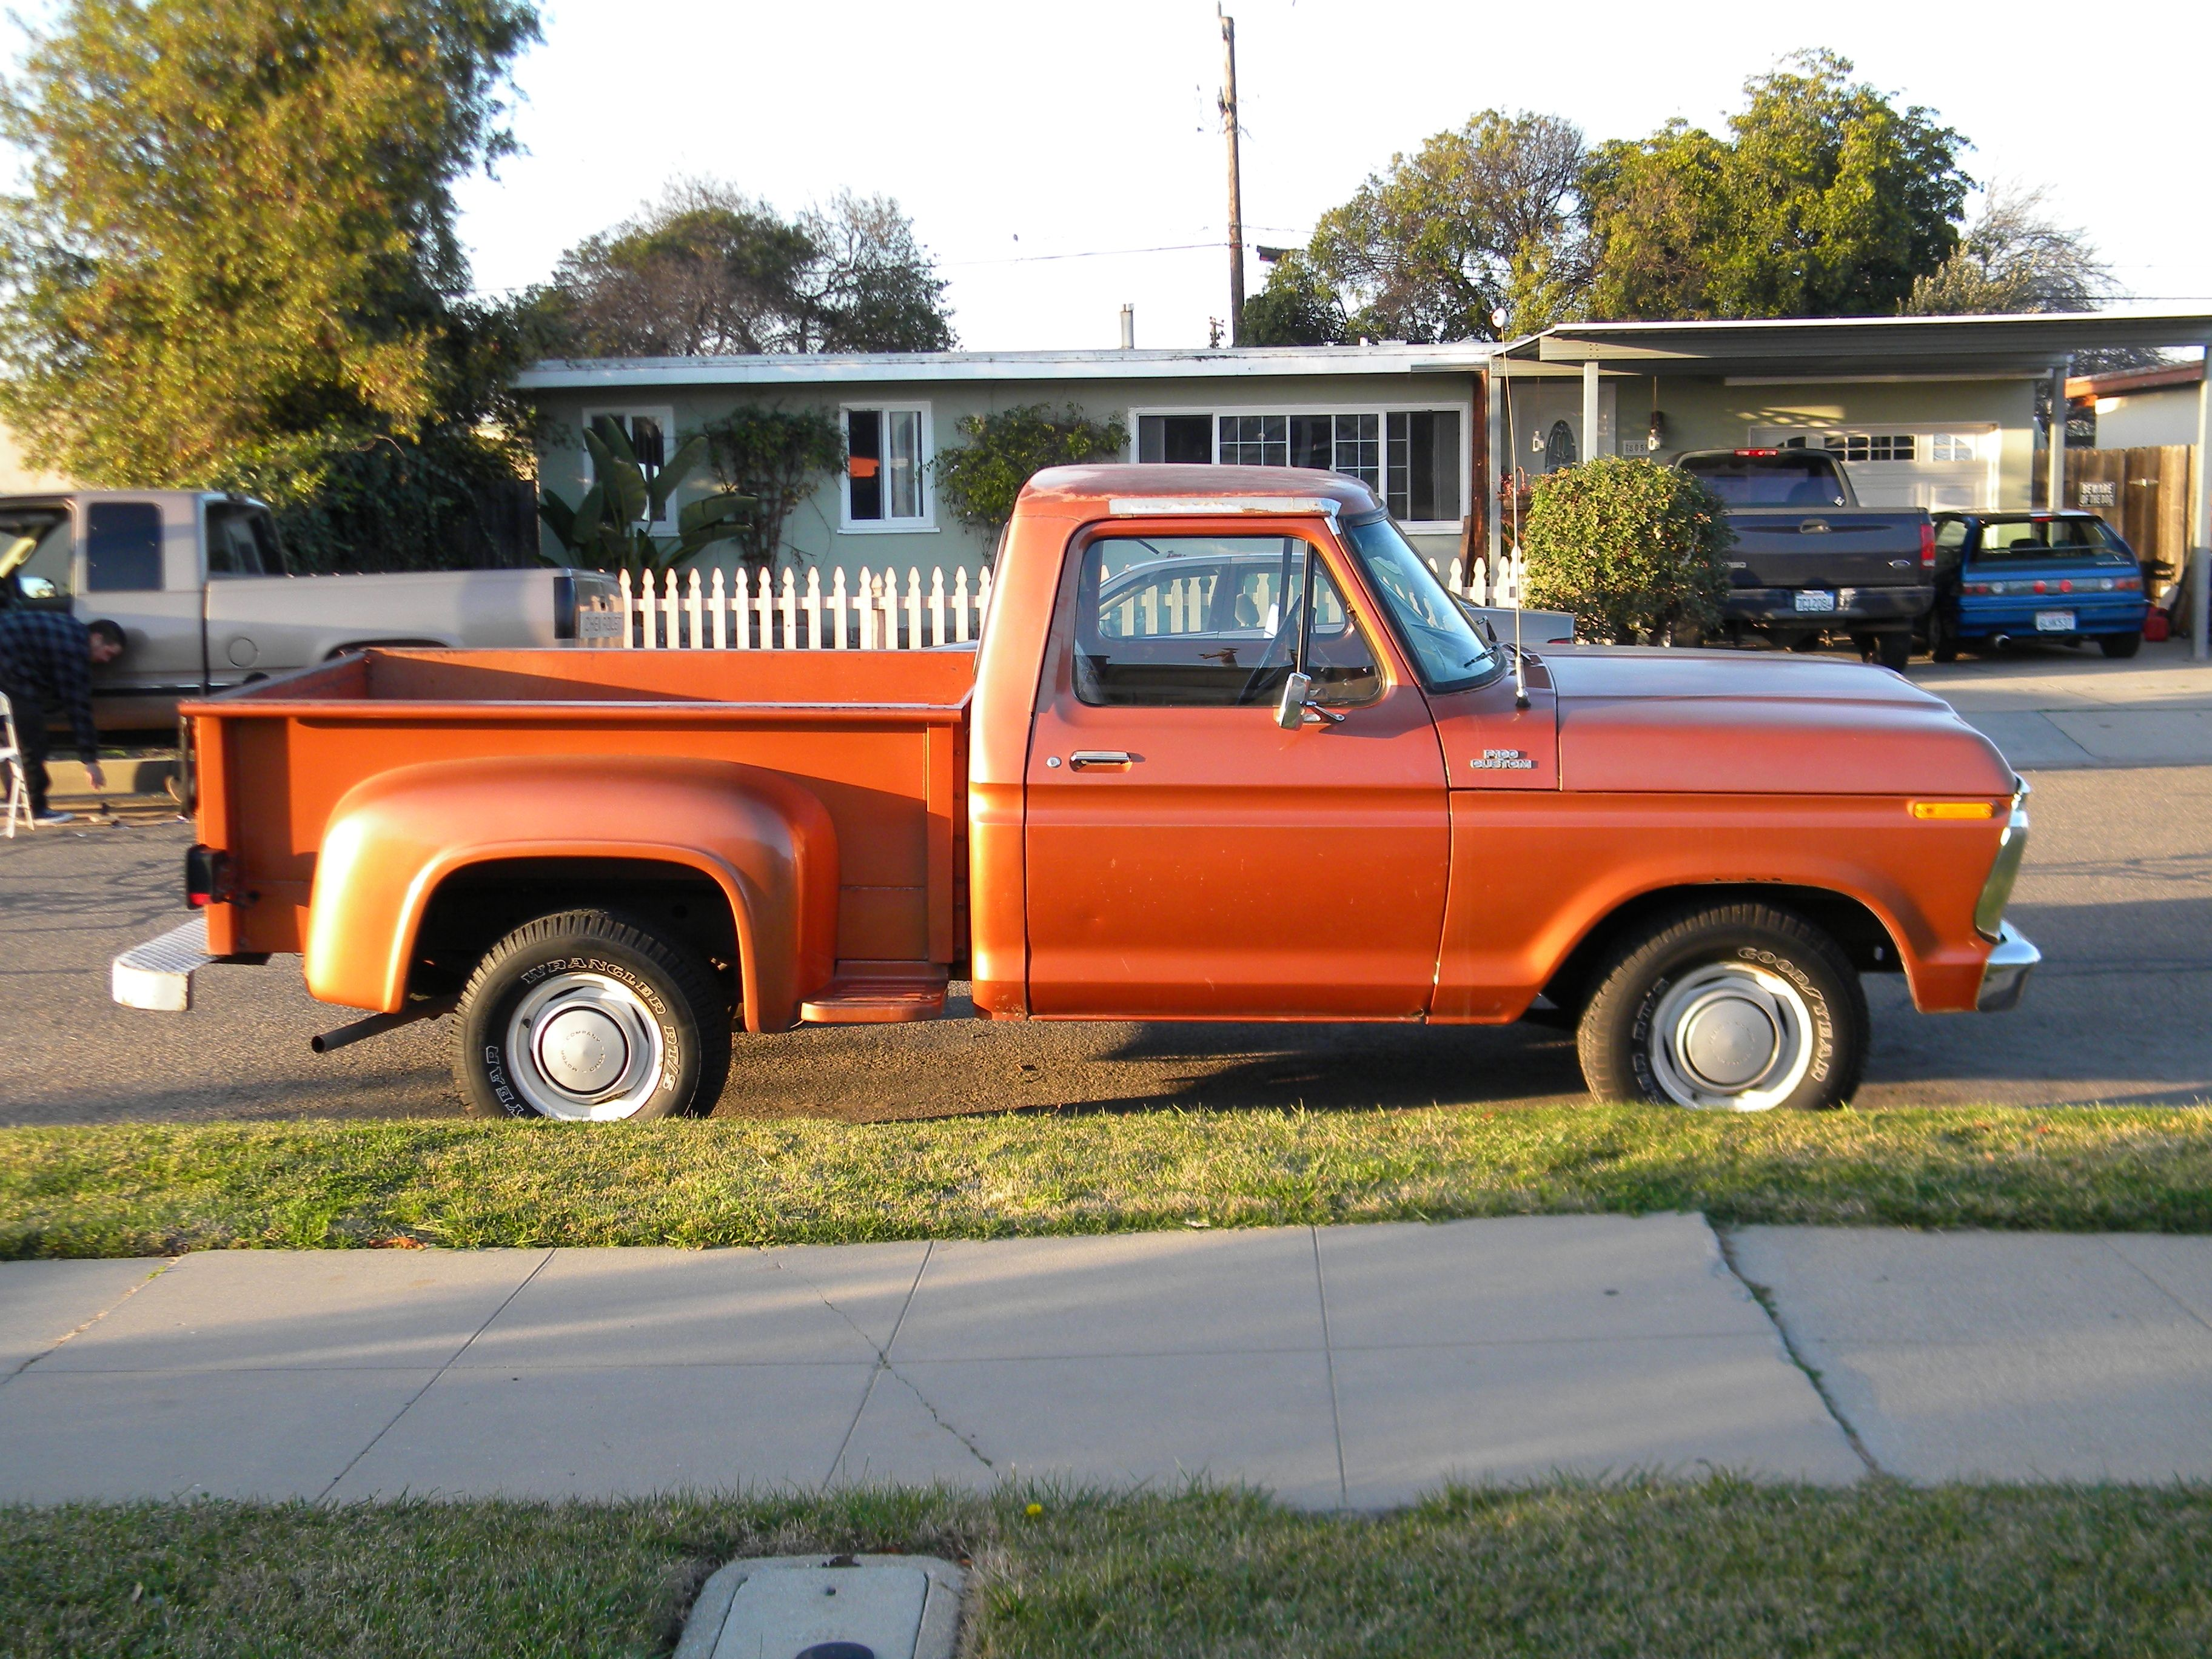 1955 ford f100 trucks for sale used cars on oodle autos post - 1977 Ford F 100 Custom